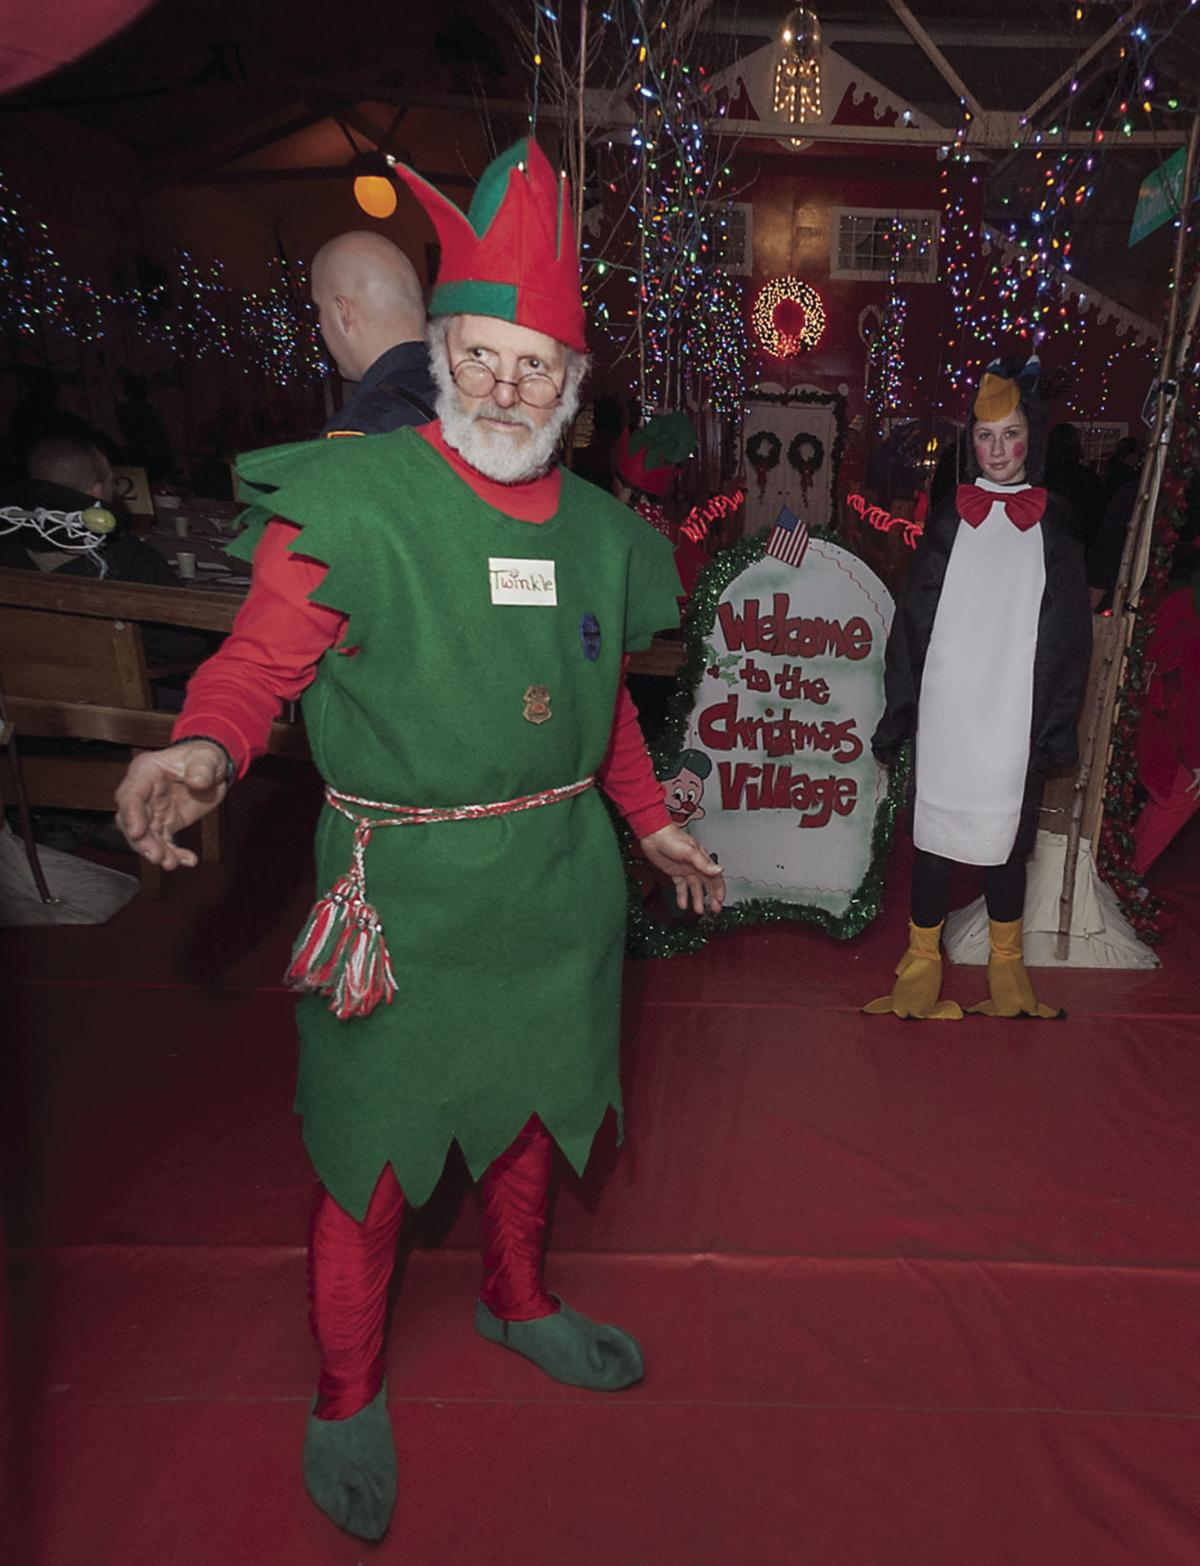 Center Conway Nh Rec Center Christmas Event 2020 Christmas Village tradition continues, with one elf absent | Lake